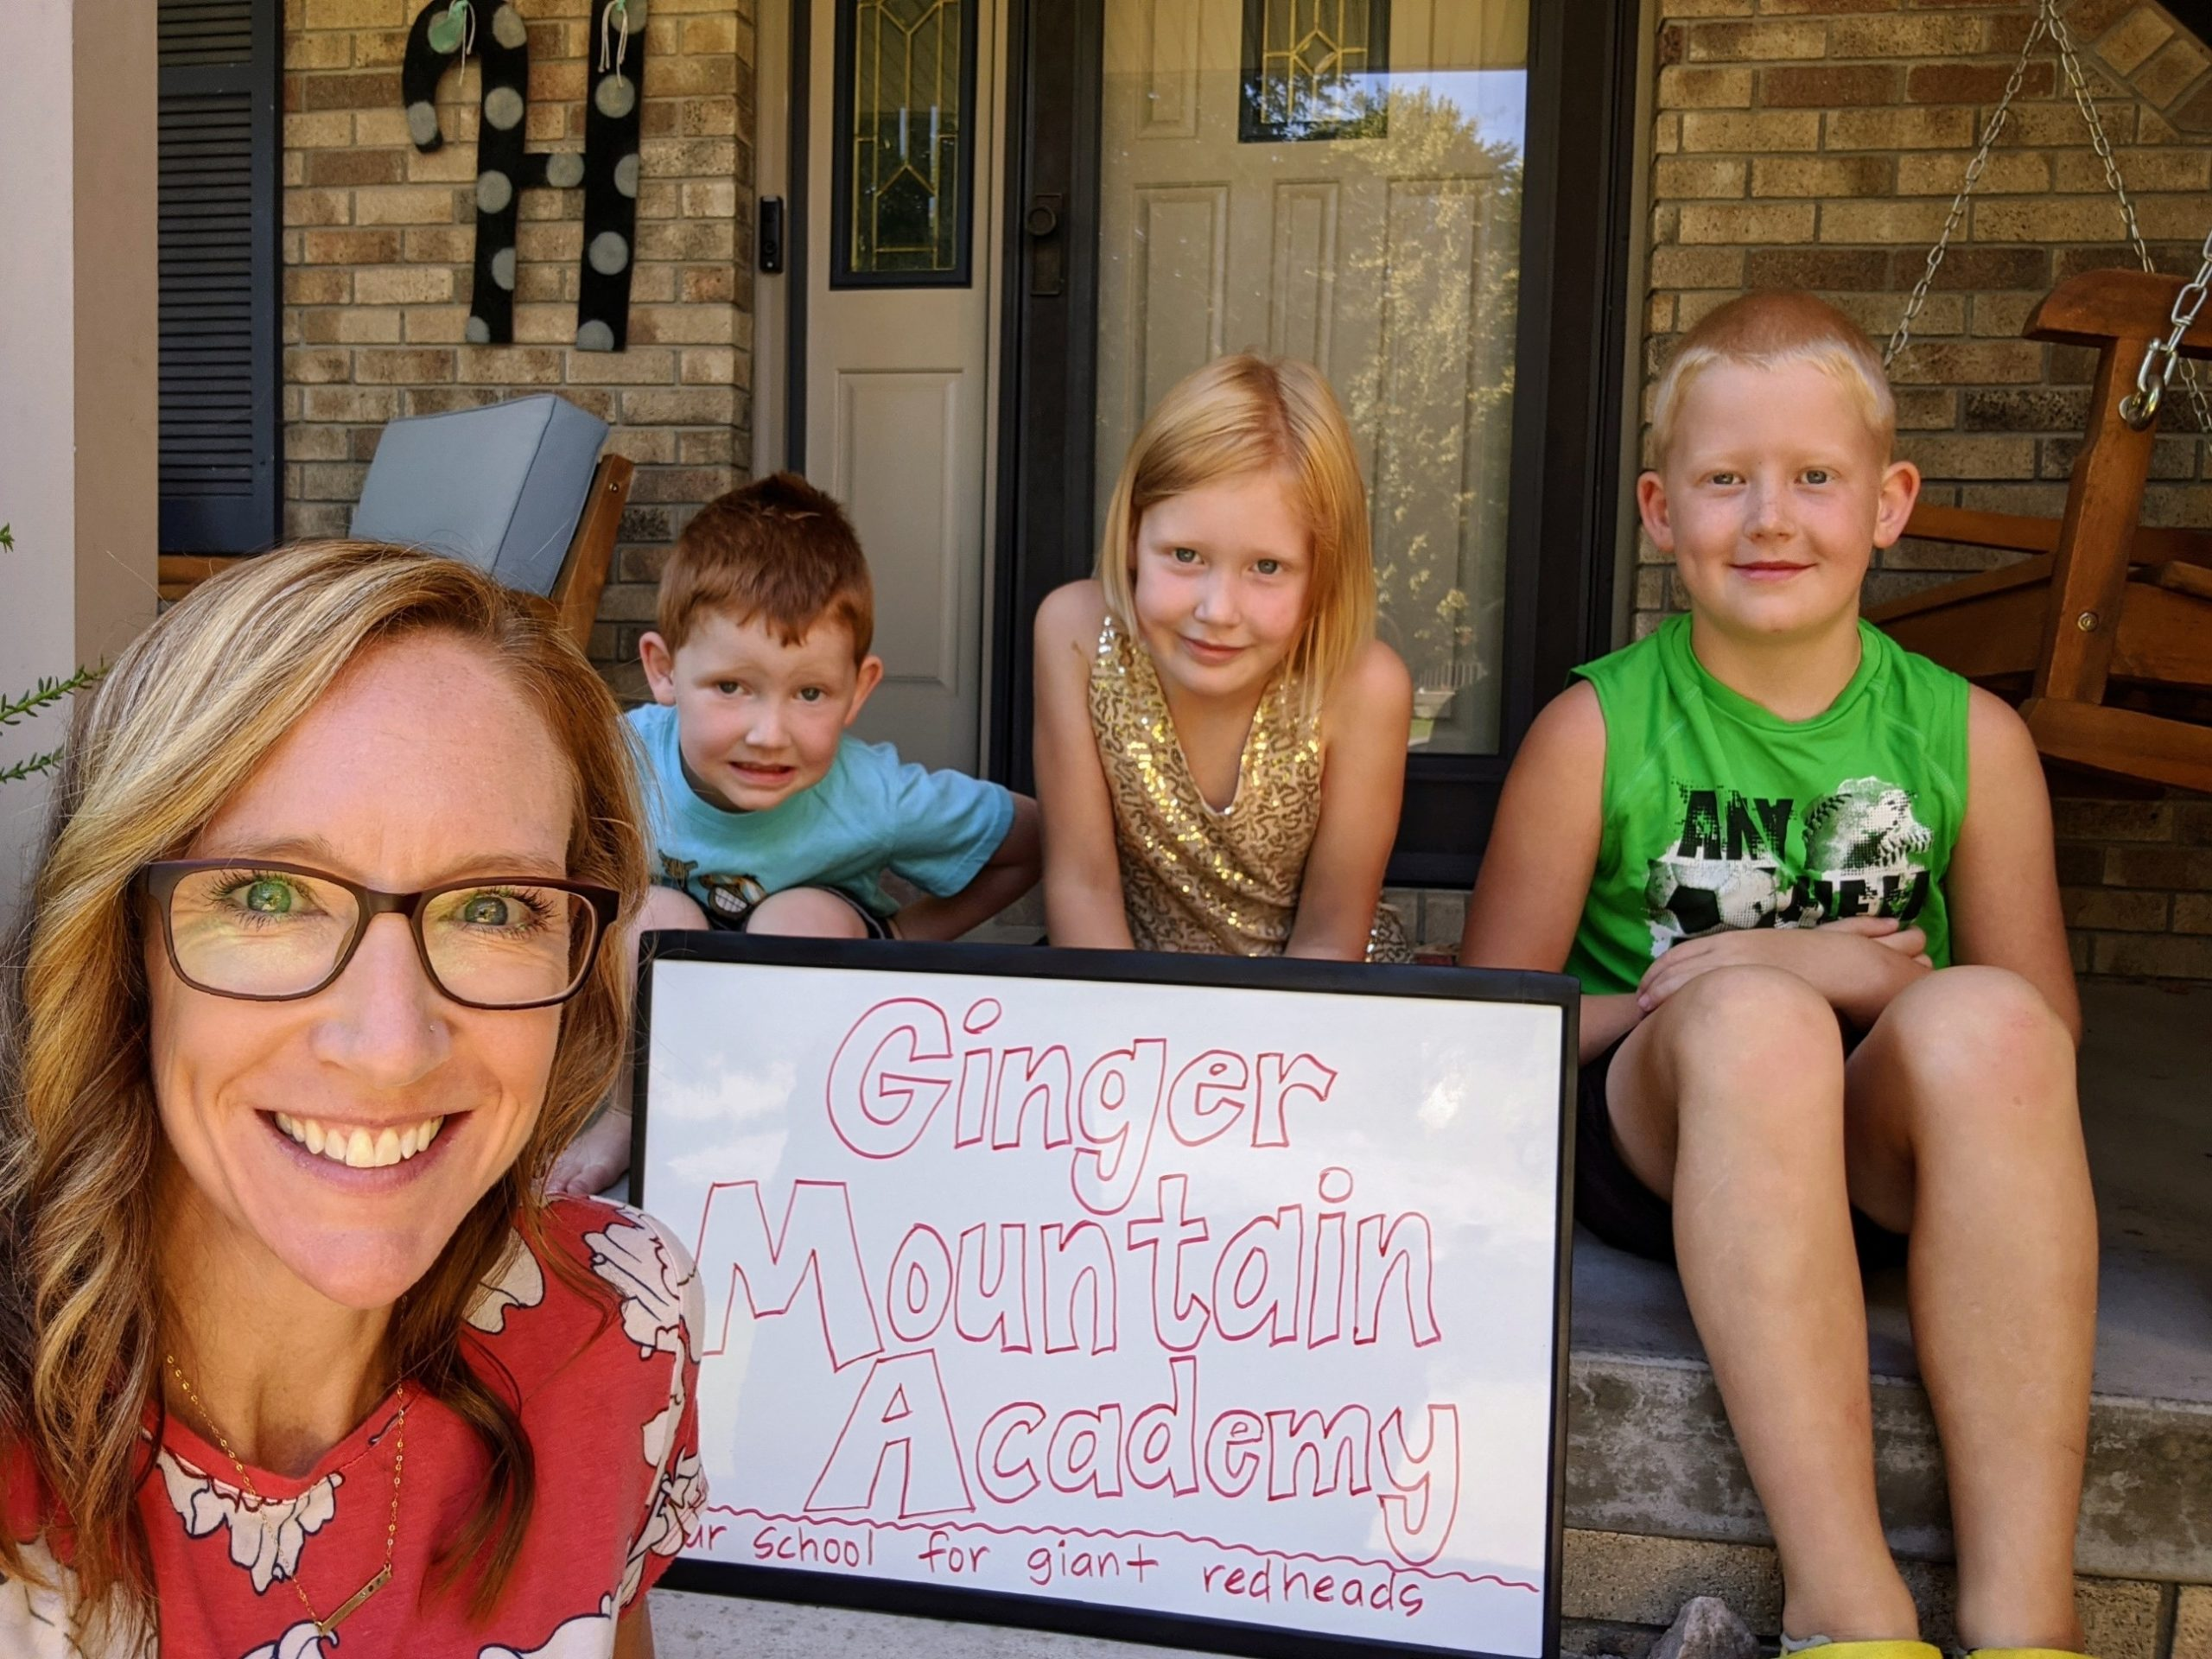 Image of a homeschool mom with three children on their first day of school surrounding a sign that says